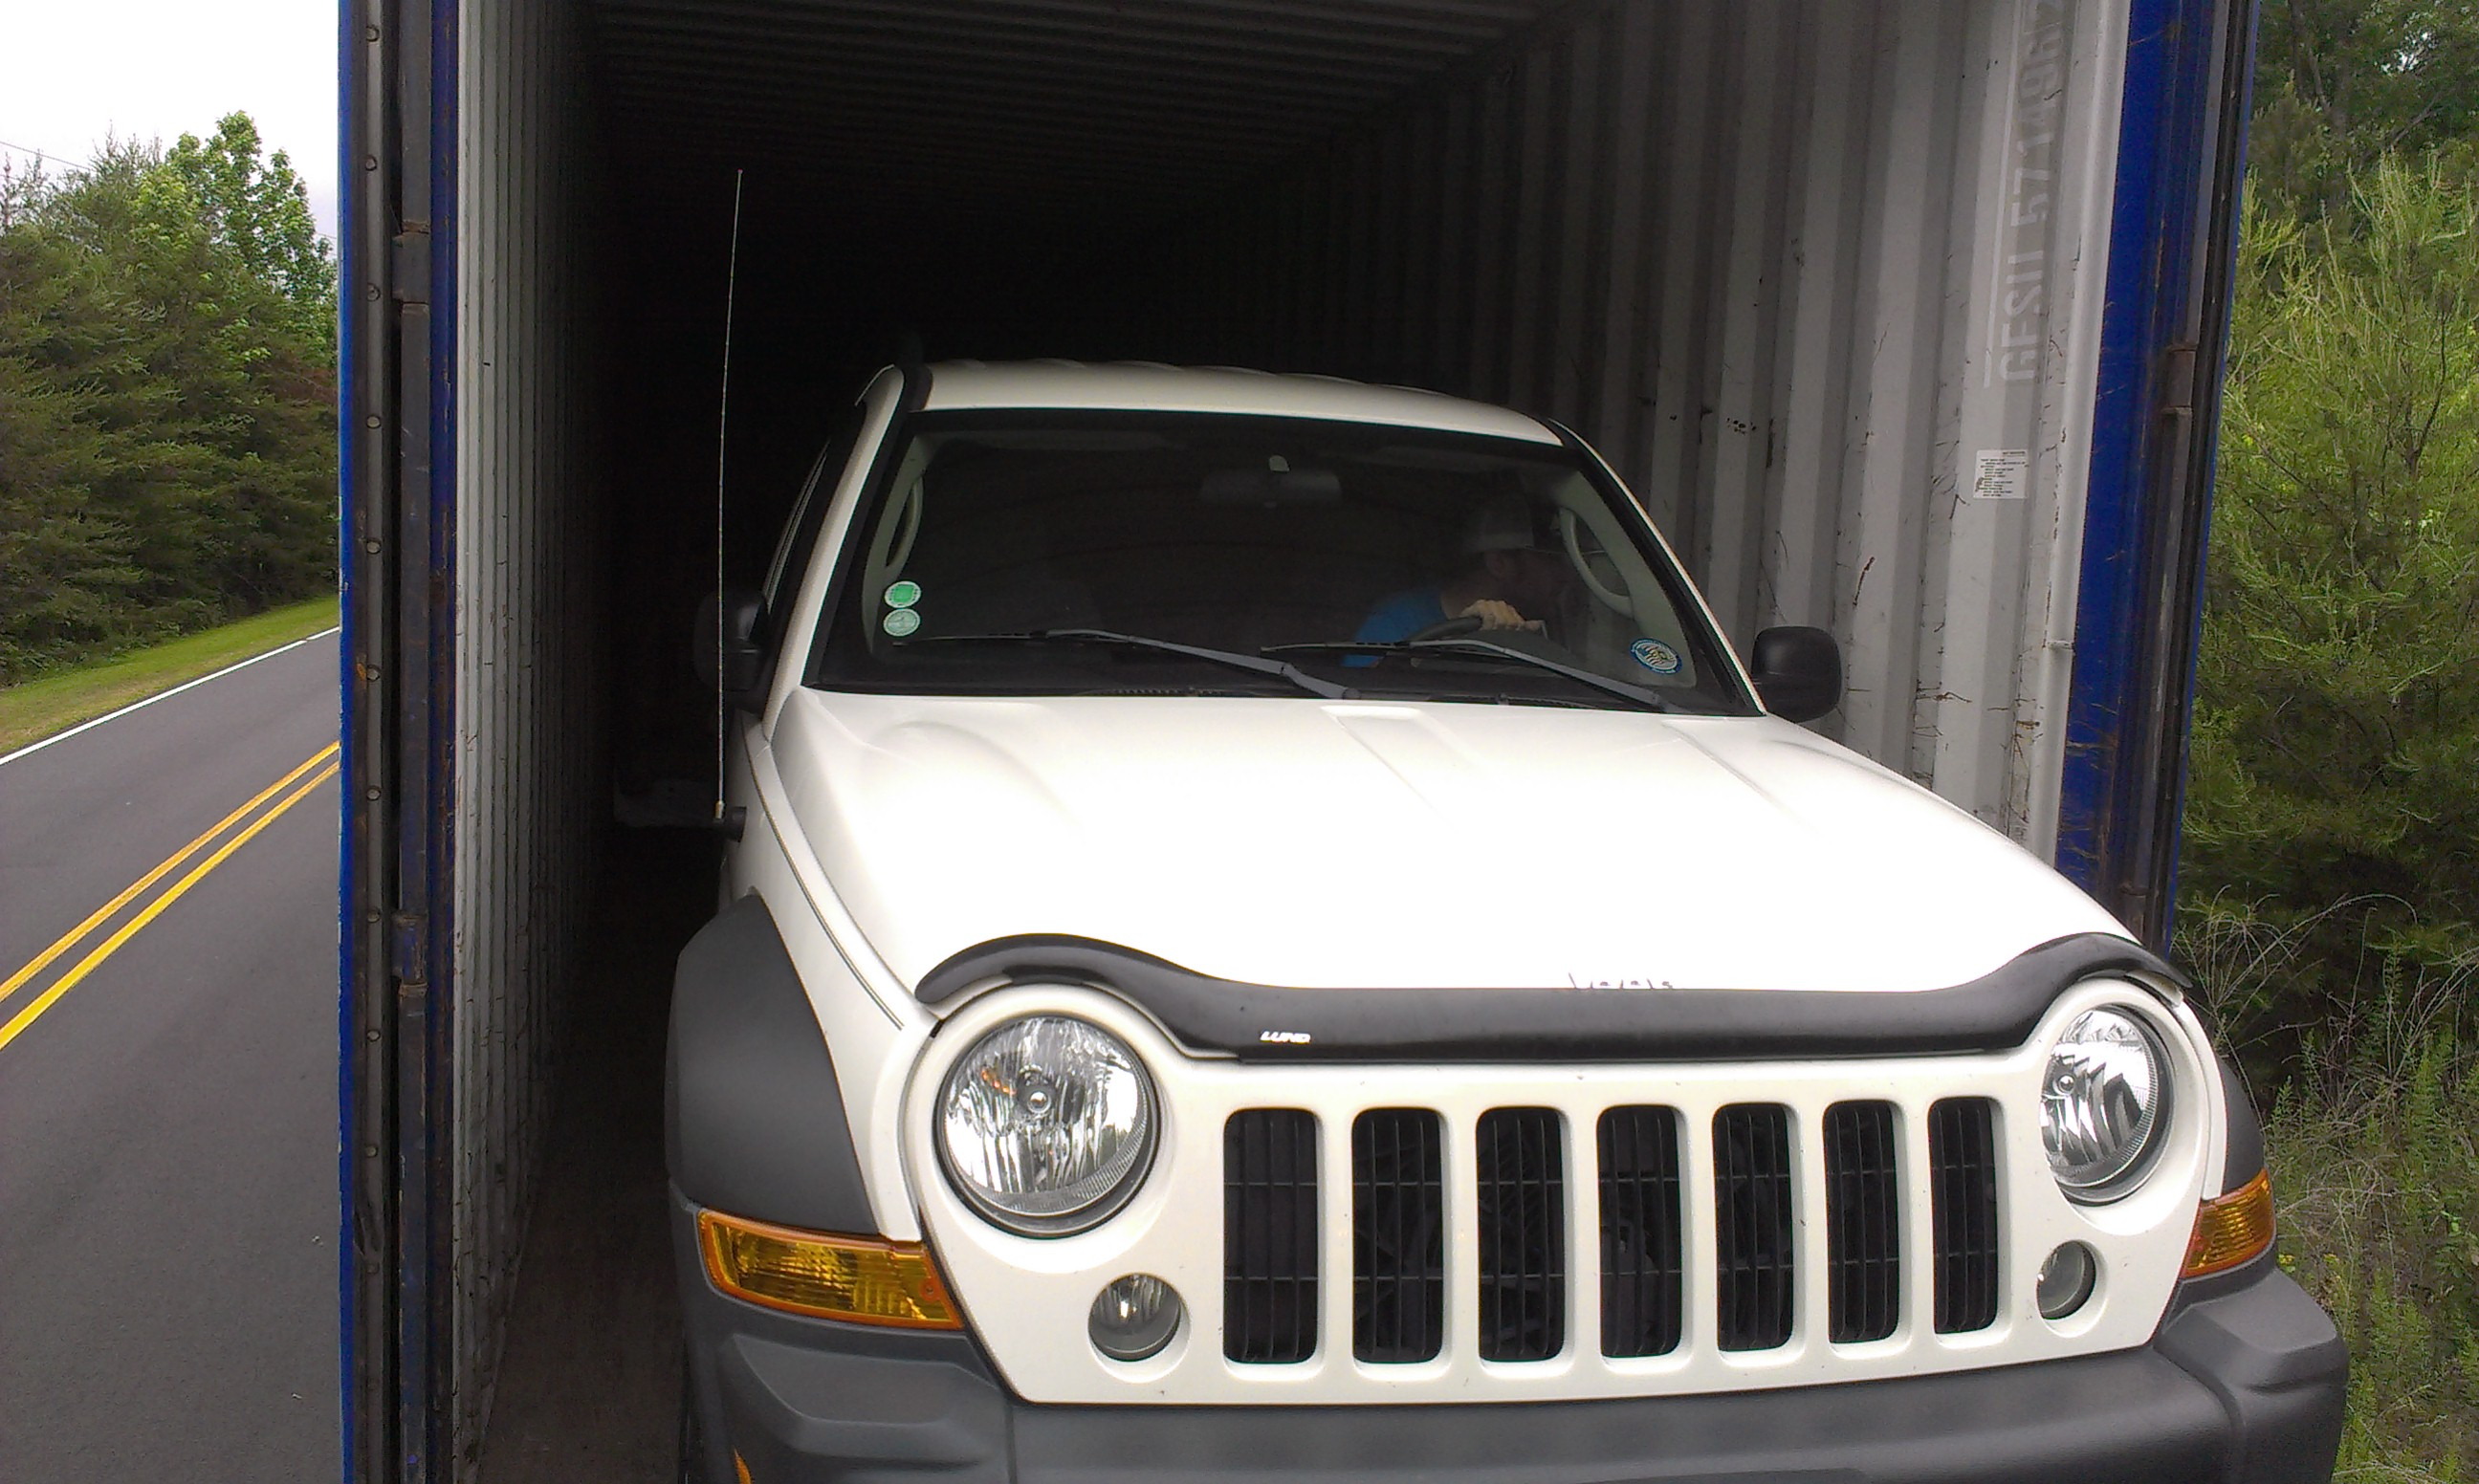 packing-service-inc-loading-car-into-shipping-container